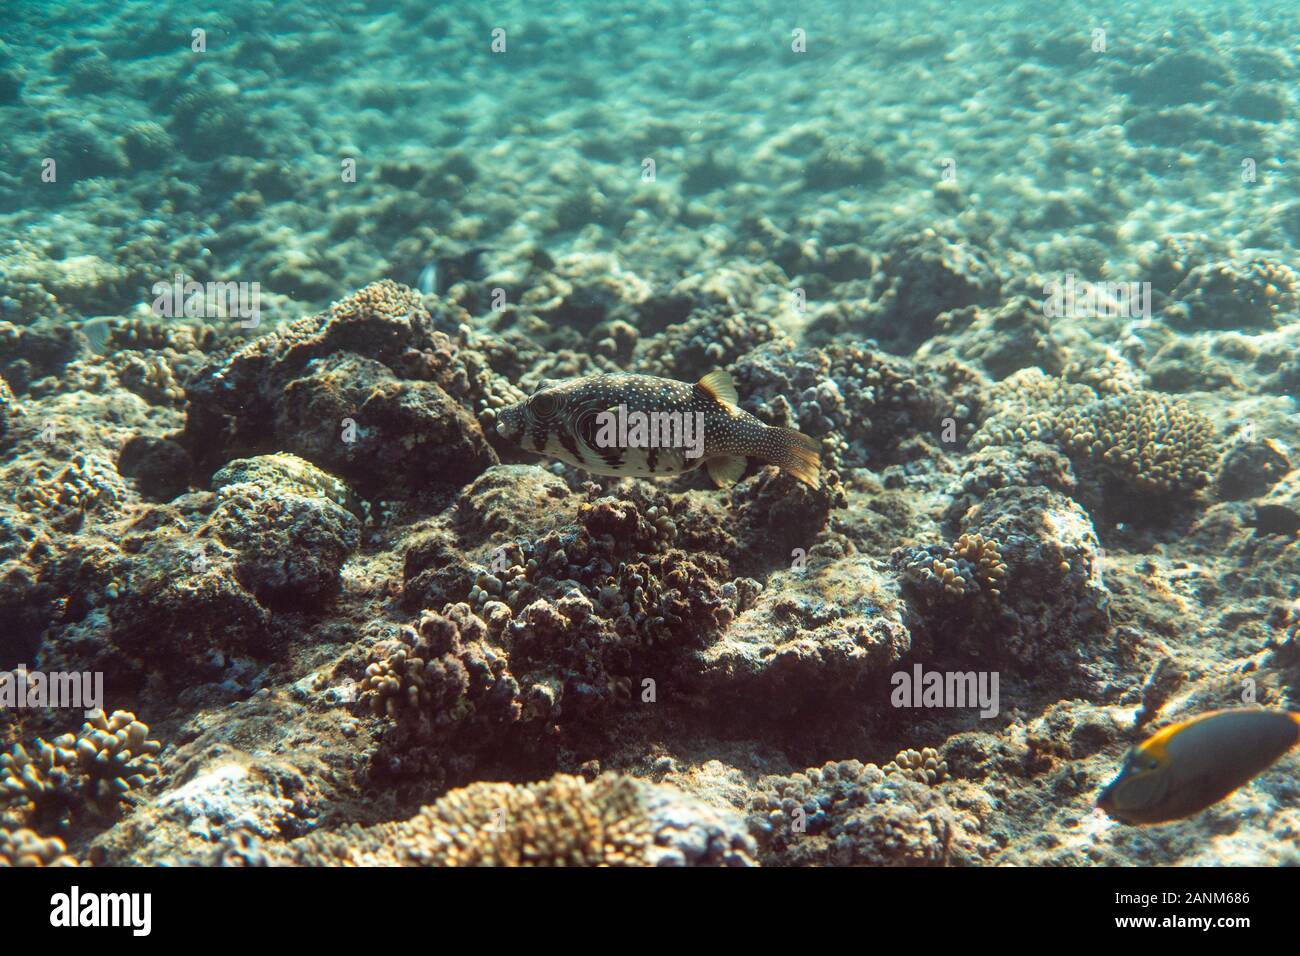 arothron stellatus underwater in the ocean of egypt, underwater in the ocean of egypt, arothron stellatus underwater photograph underwater photograph, Stock Photo